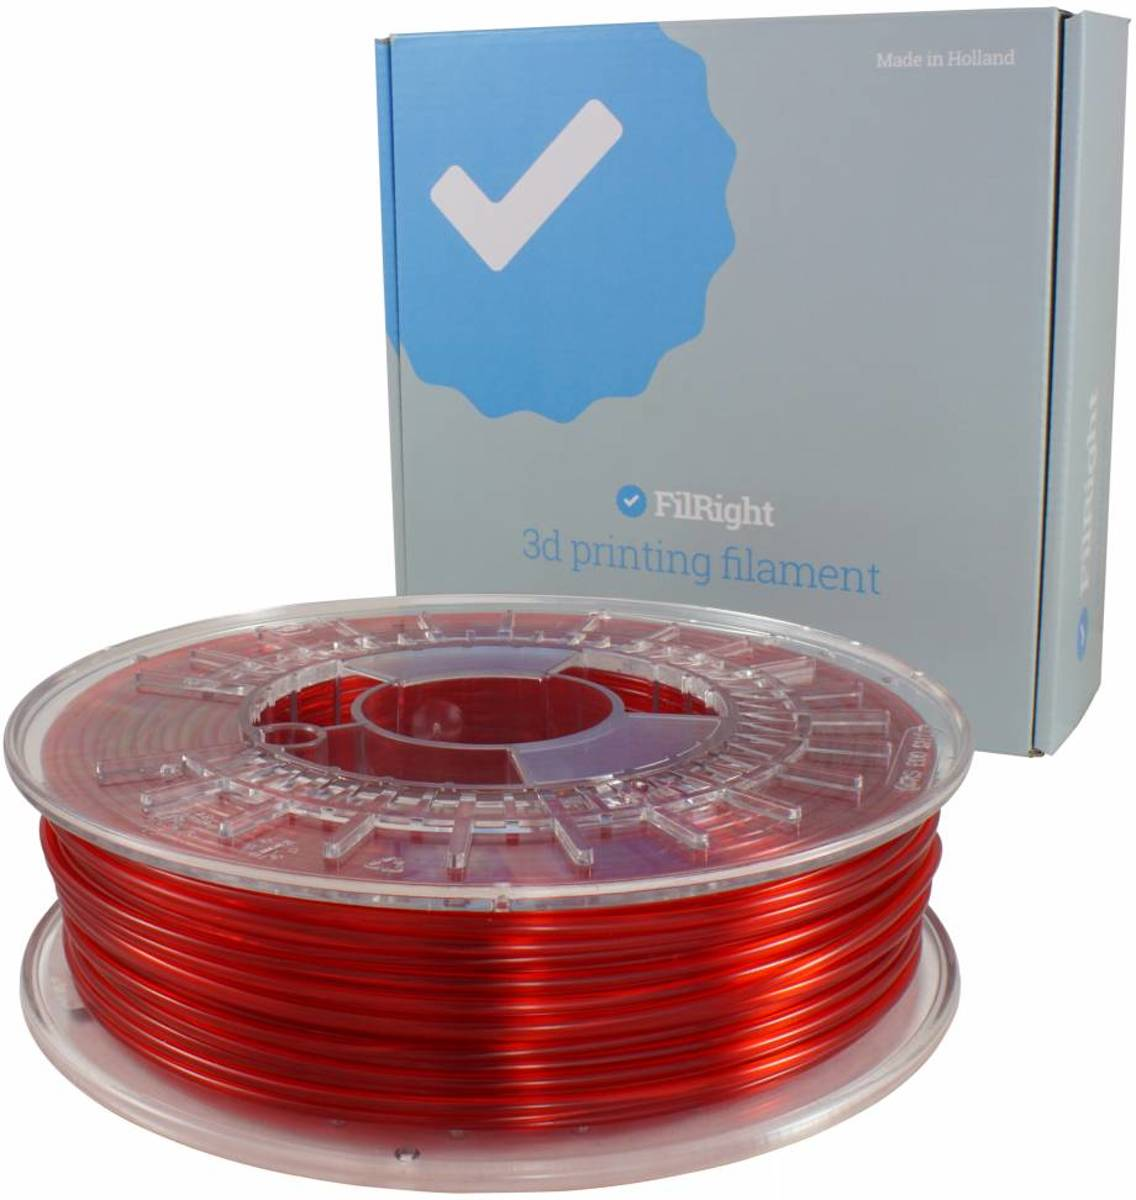 FilRight Pro PETG - 2.85mm - 750 g - Rood transparant